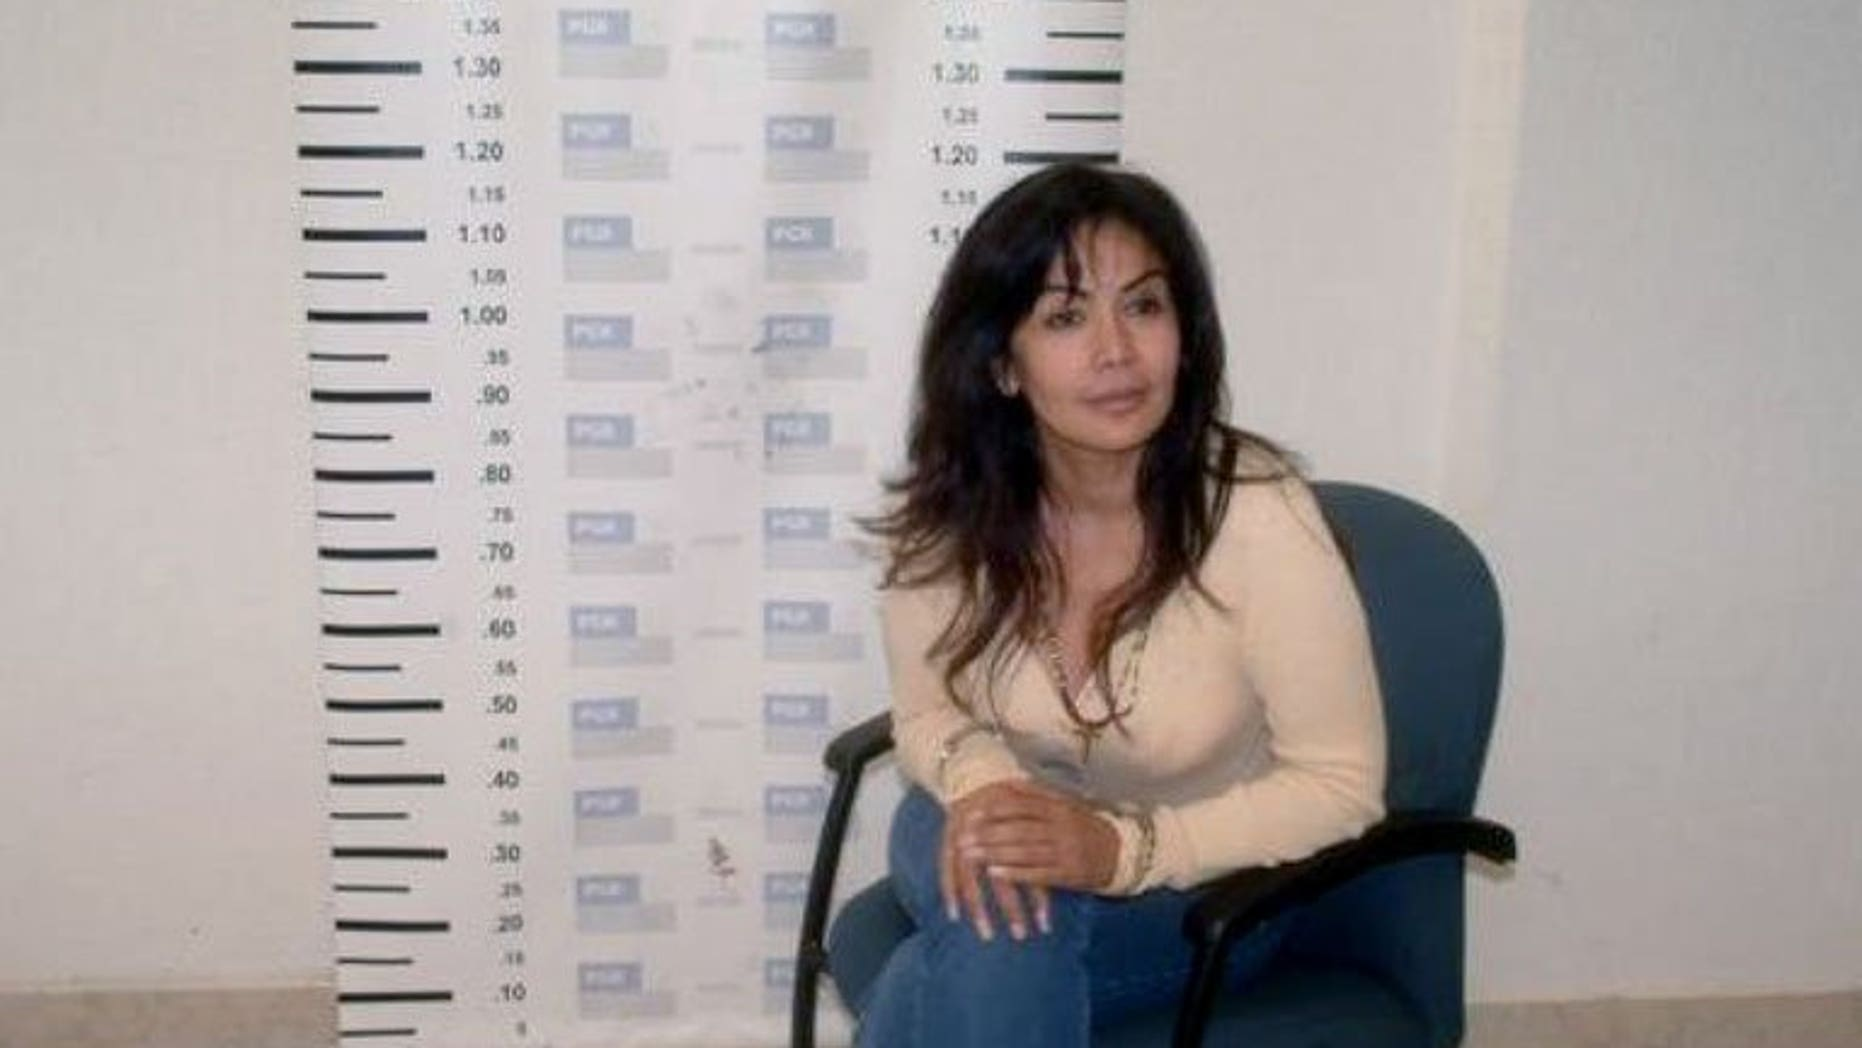 """A mug shots of Sandra Avila Beltran, also known as the """"Queen of the Pacific,"""" taken upon her arrest in Mexico City on September 28, 2007. Mexico will detain Avila Beltran for her links to the drug trade, after the United States deports her, an official said Wednesday."""